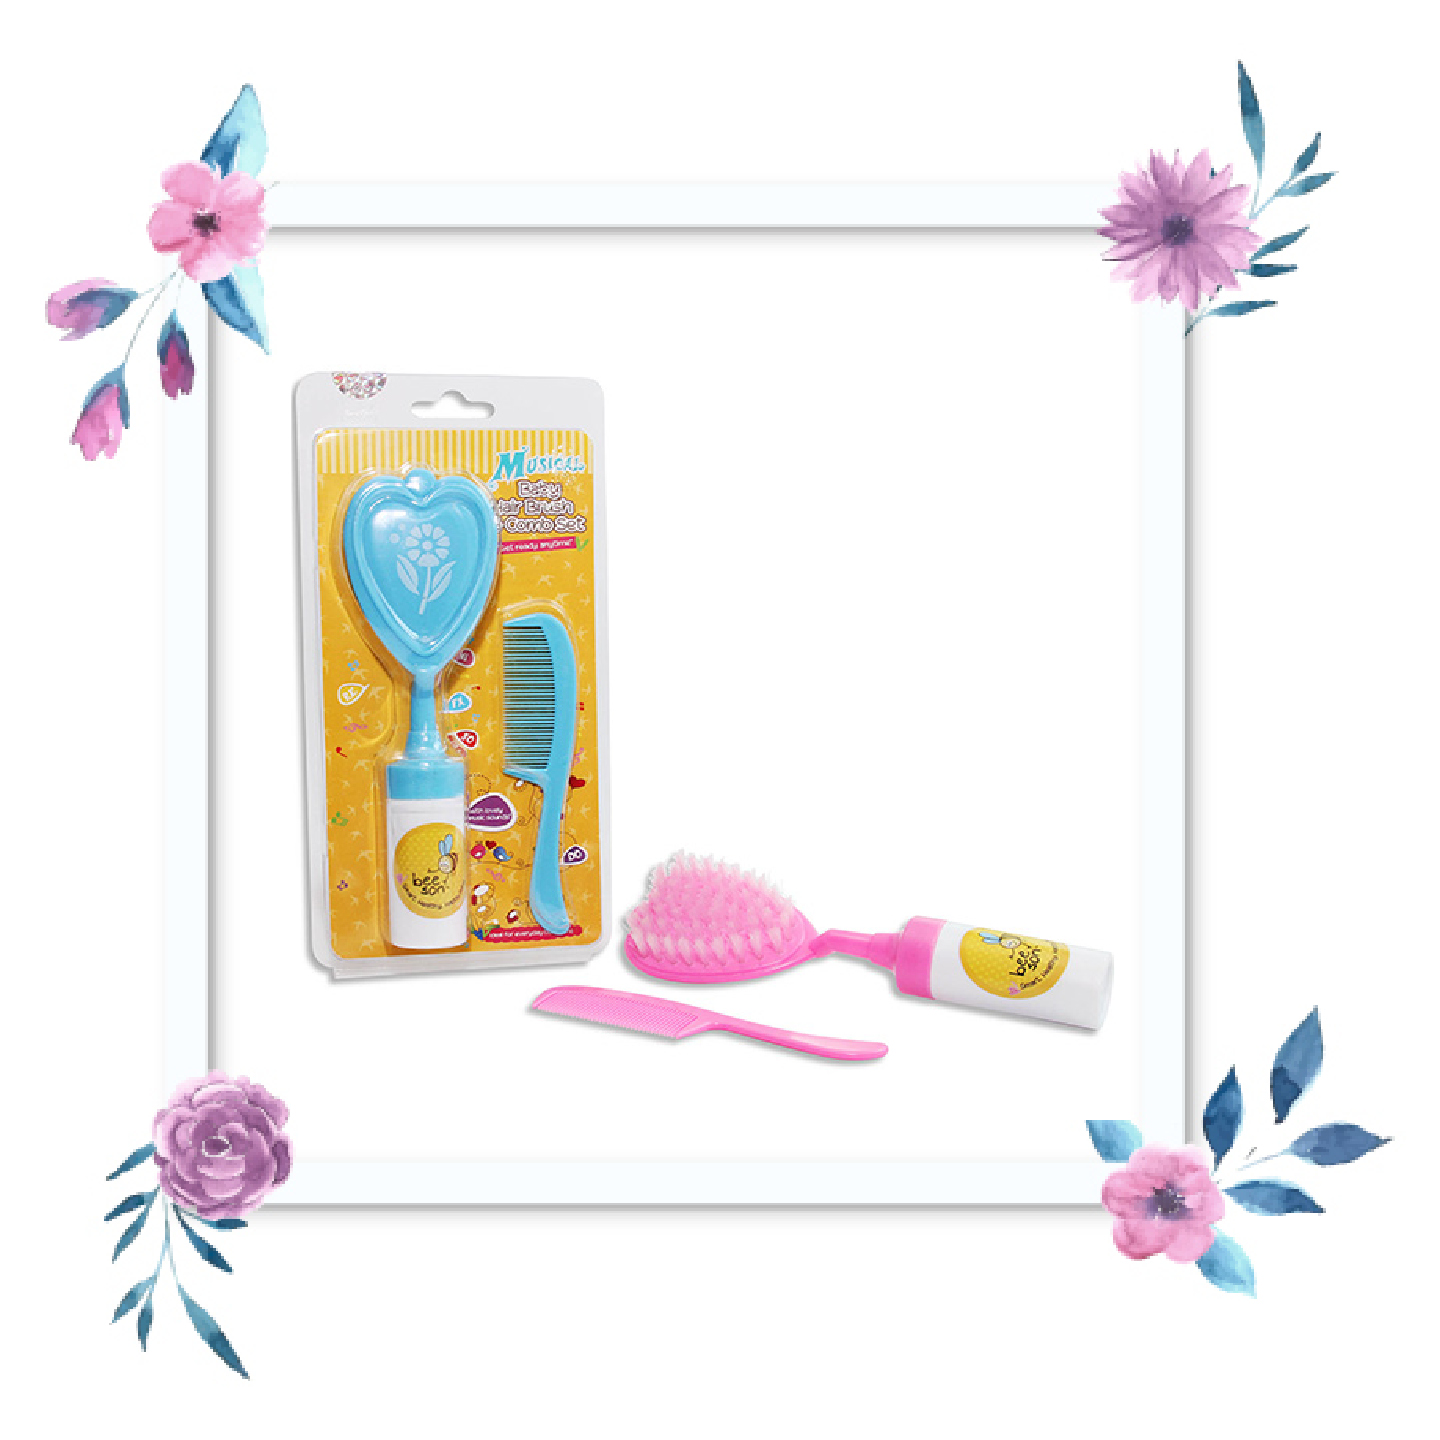 Bee Son Baby Hair Brush Comb With Music Marissa Shoppe Pigeon Ampamp Set